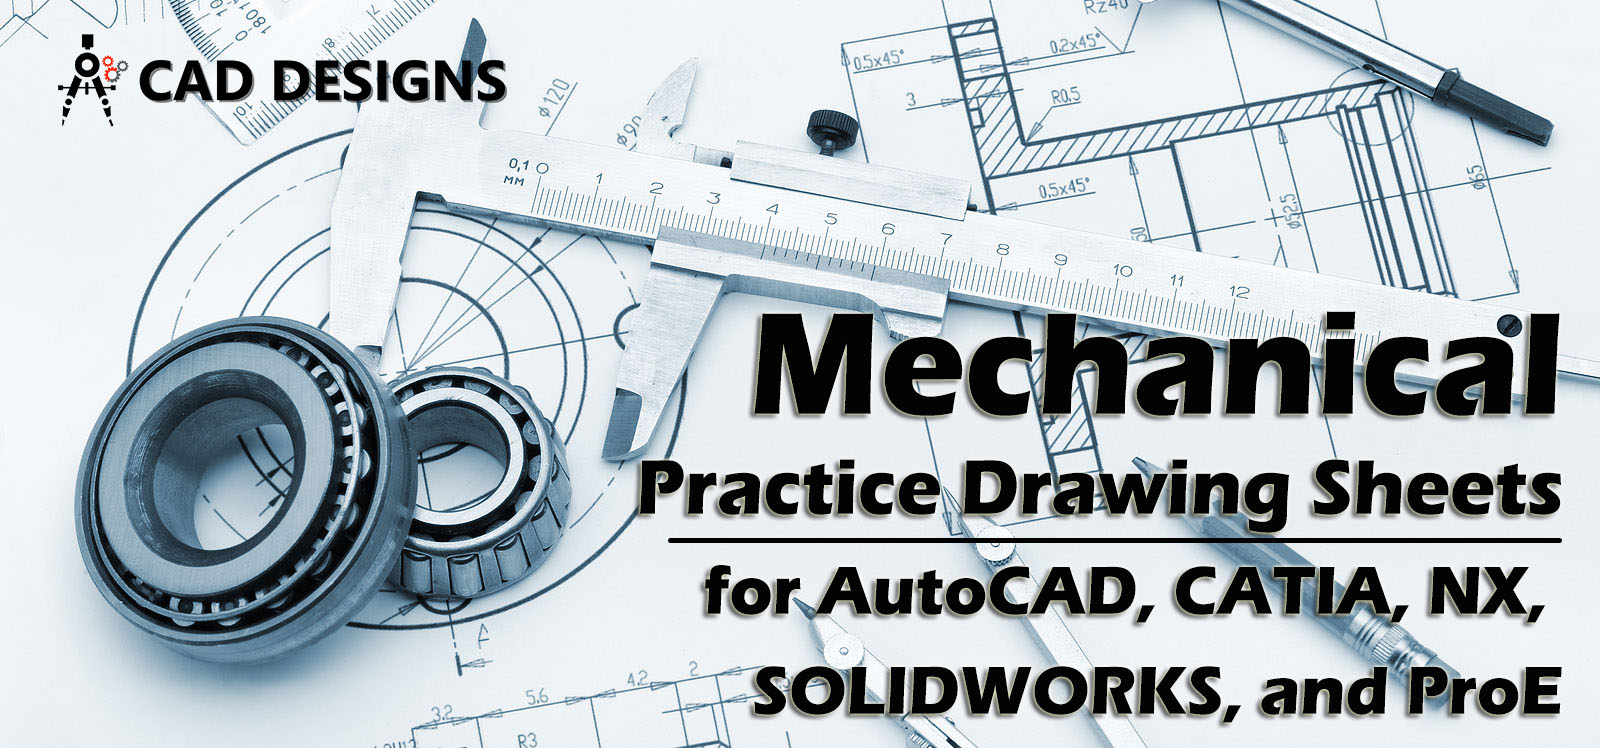 Mechanical Practice Drawing Sheets for AutoCAD, CATIA, NX, SOLIDWORKS, and ProE